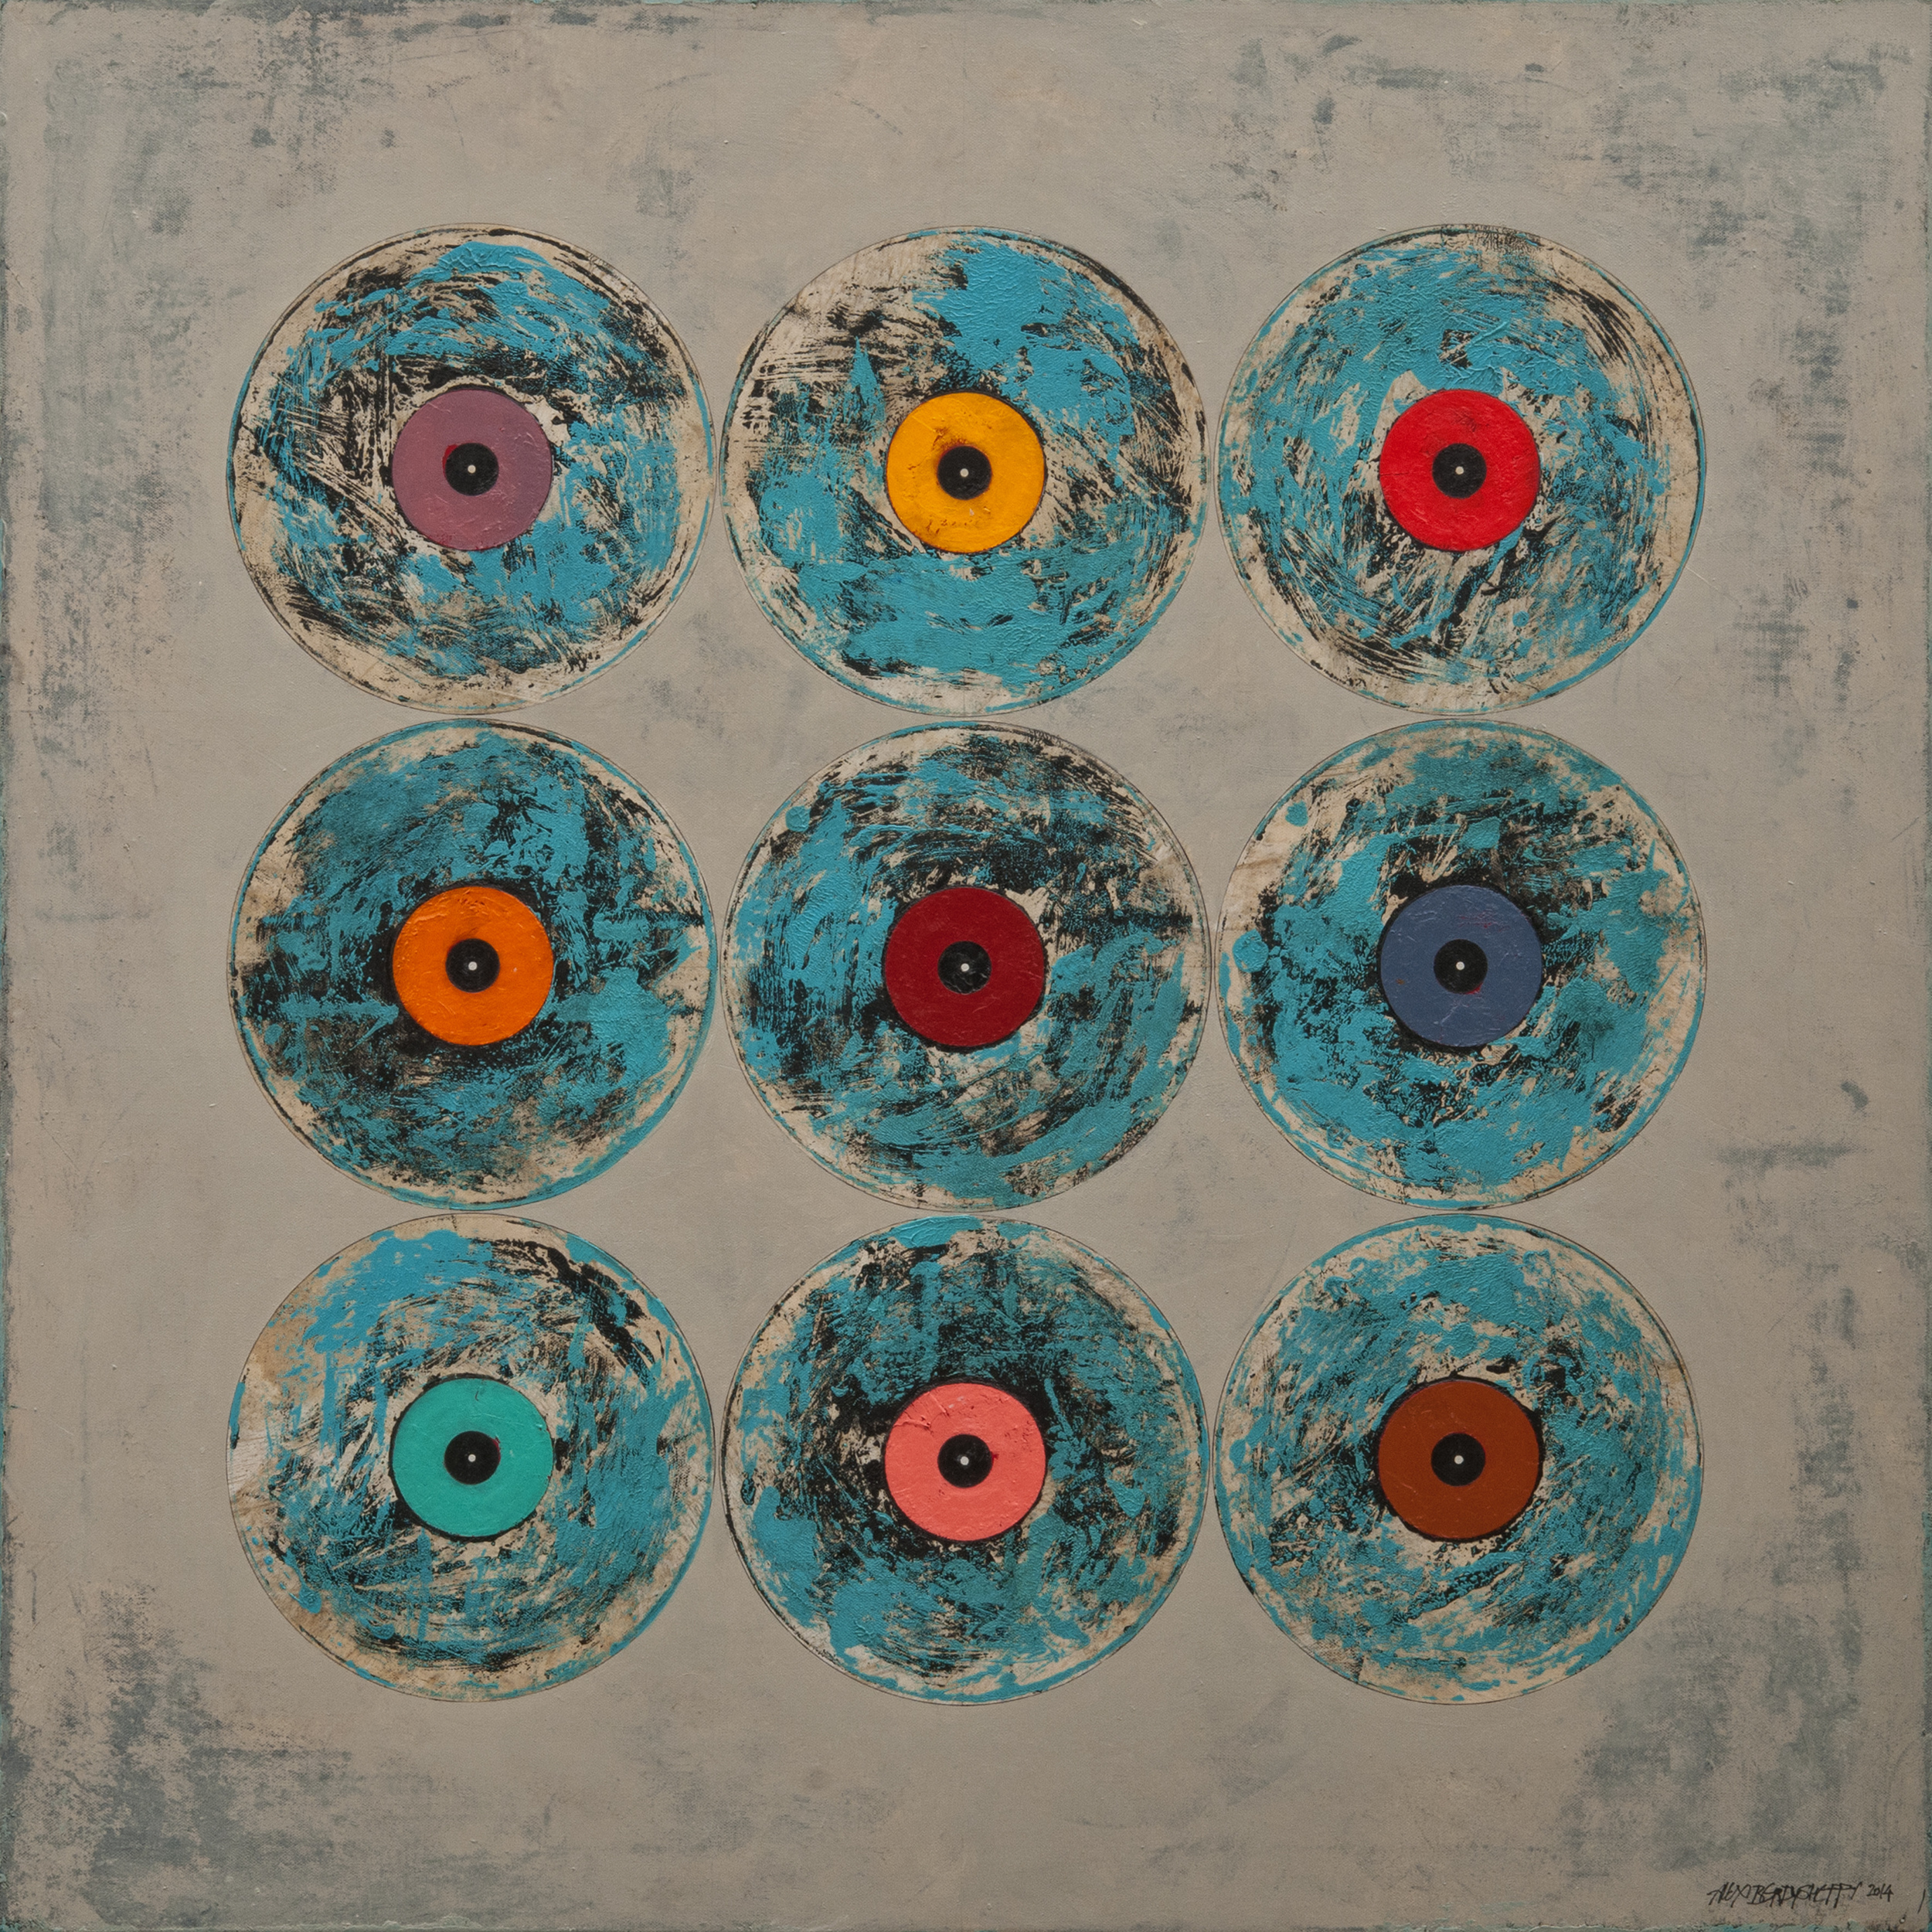 Vinyl, oil on canvas, 85x85 cm, 2014